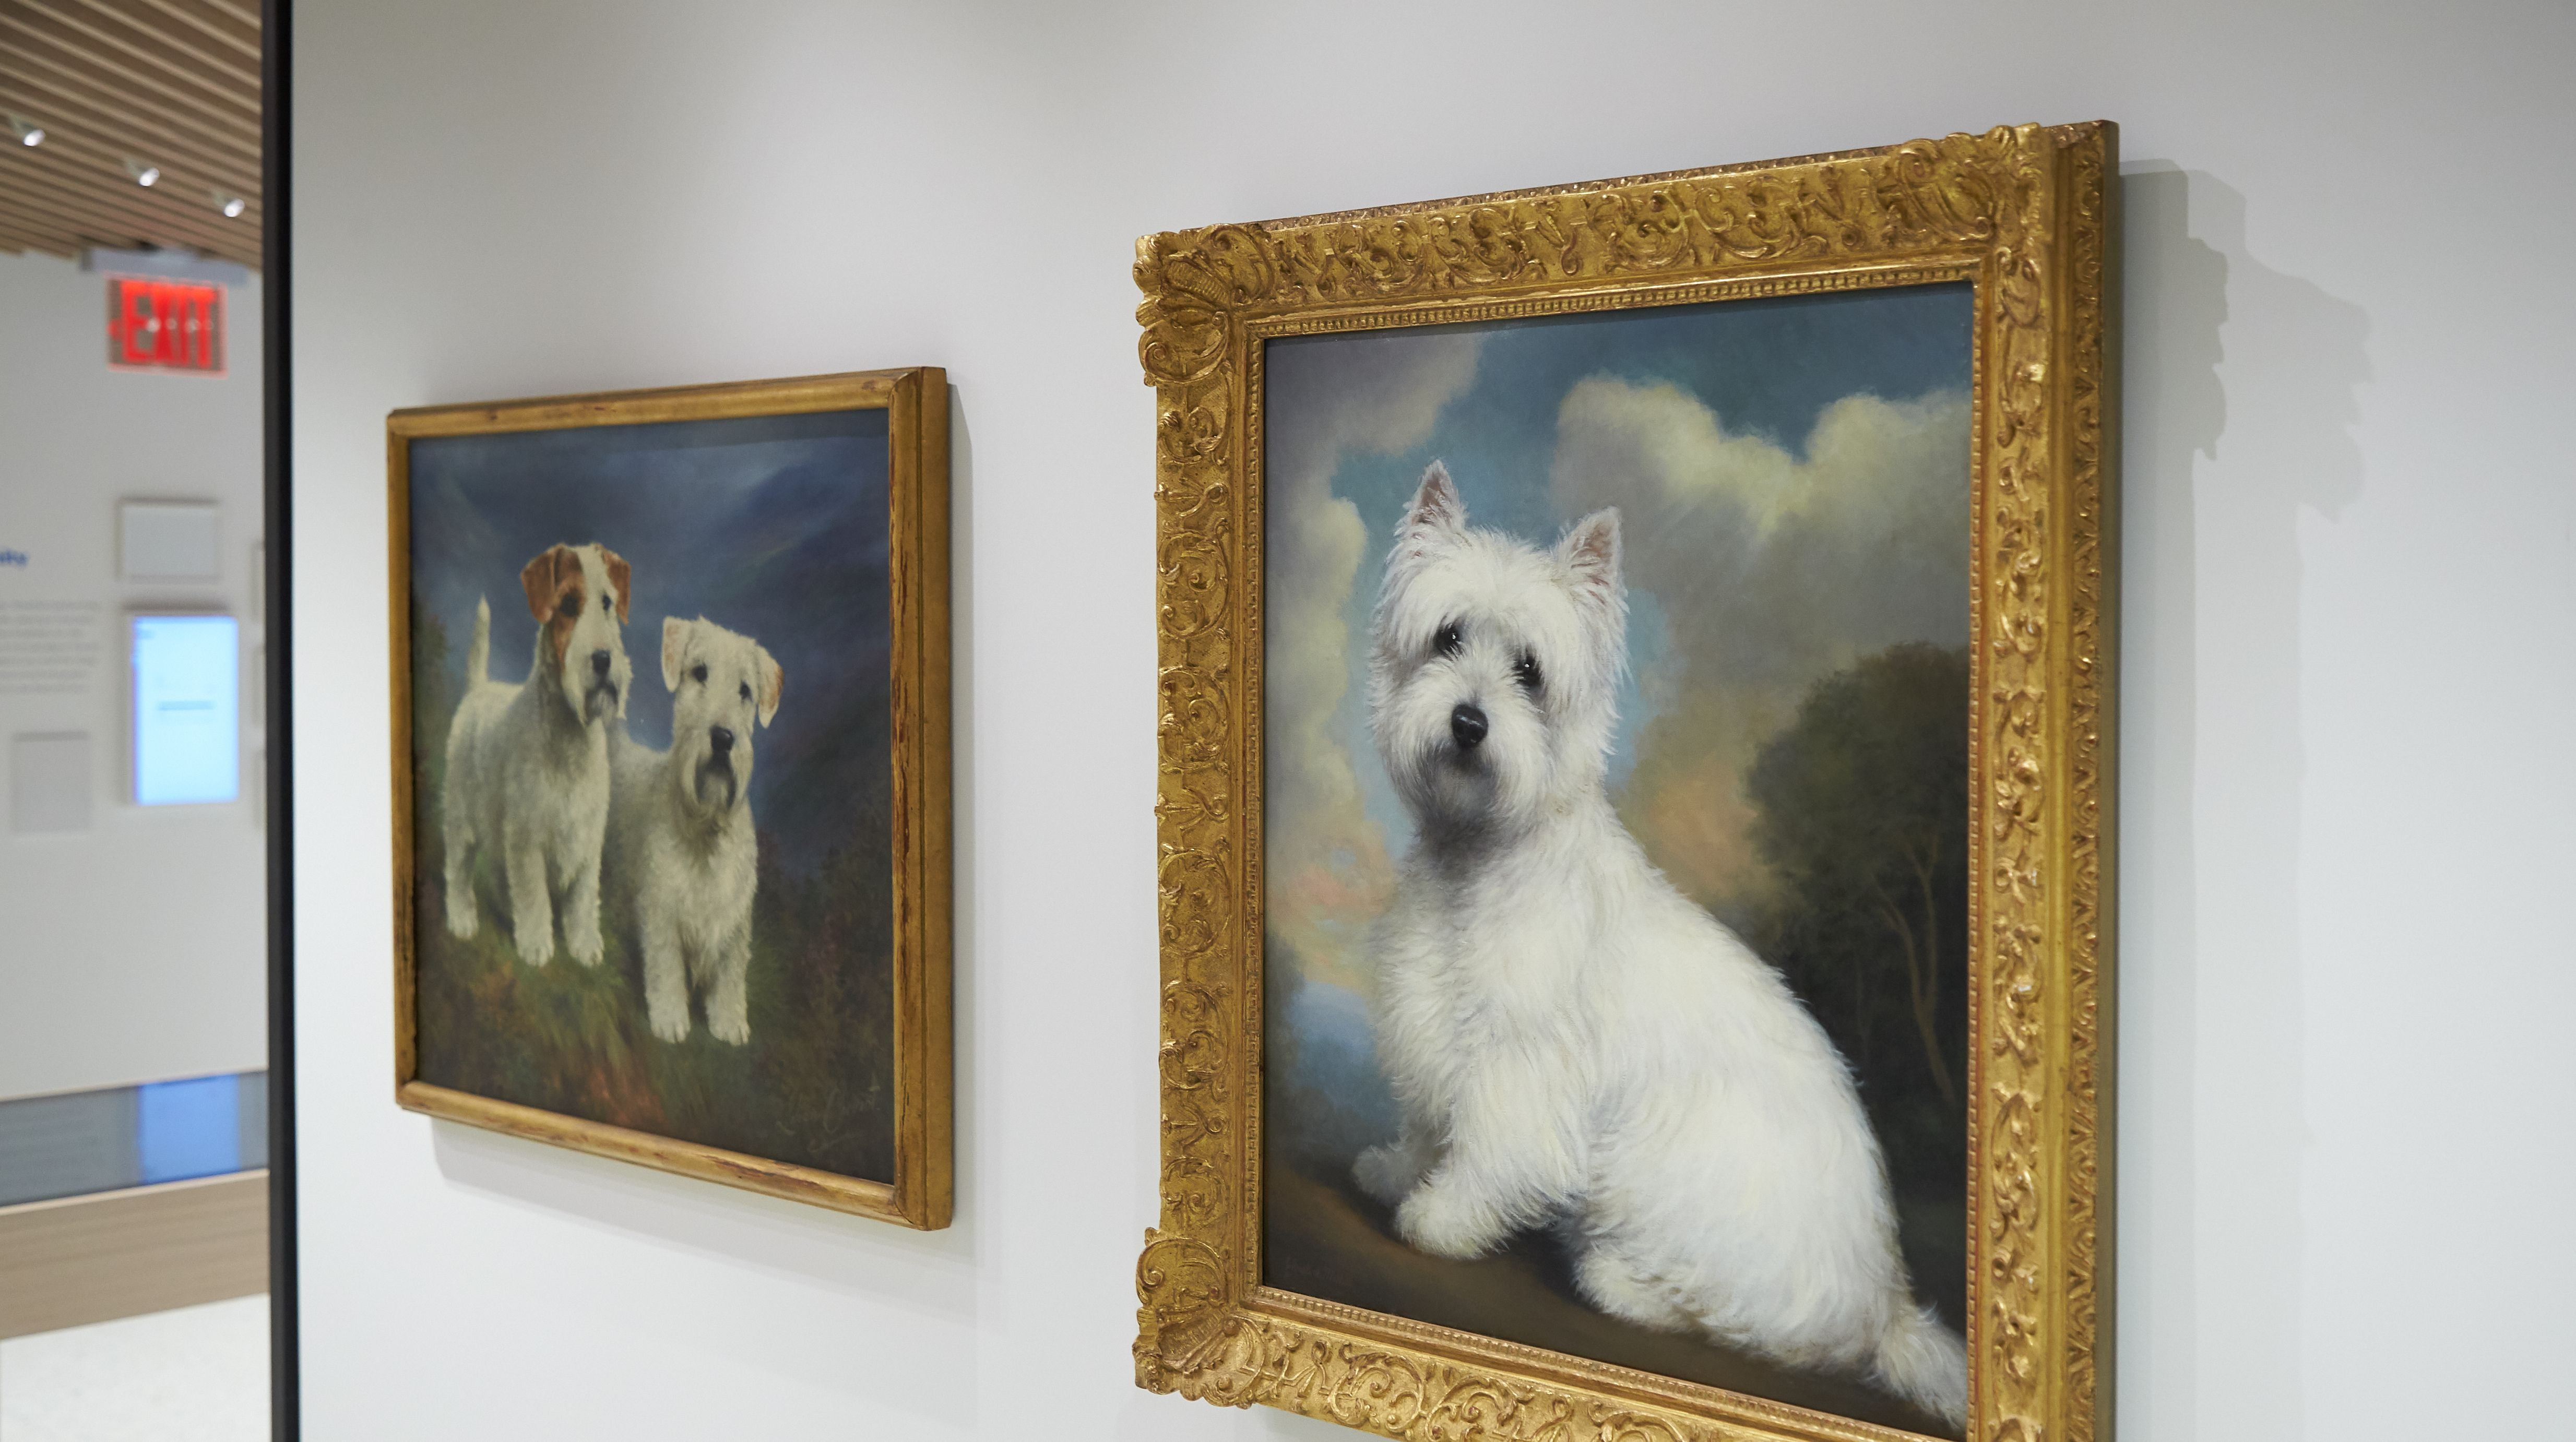 The Museum of the Dog is set to debut in New York City on